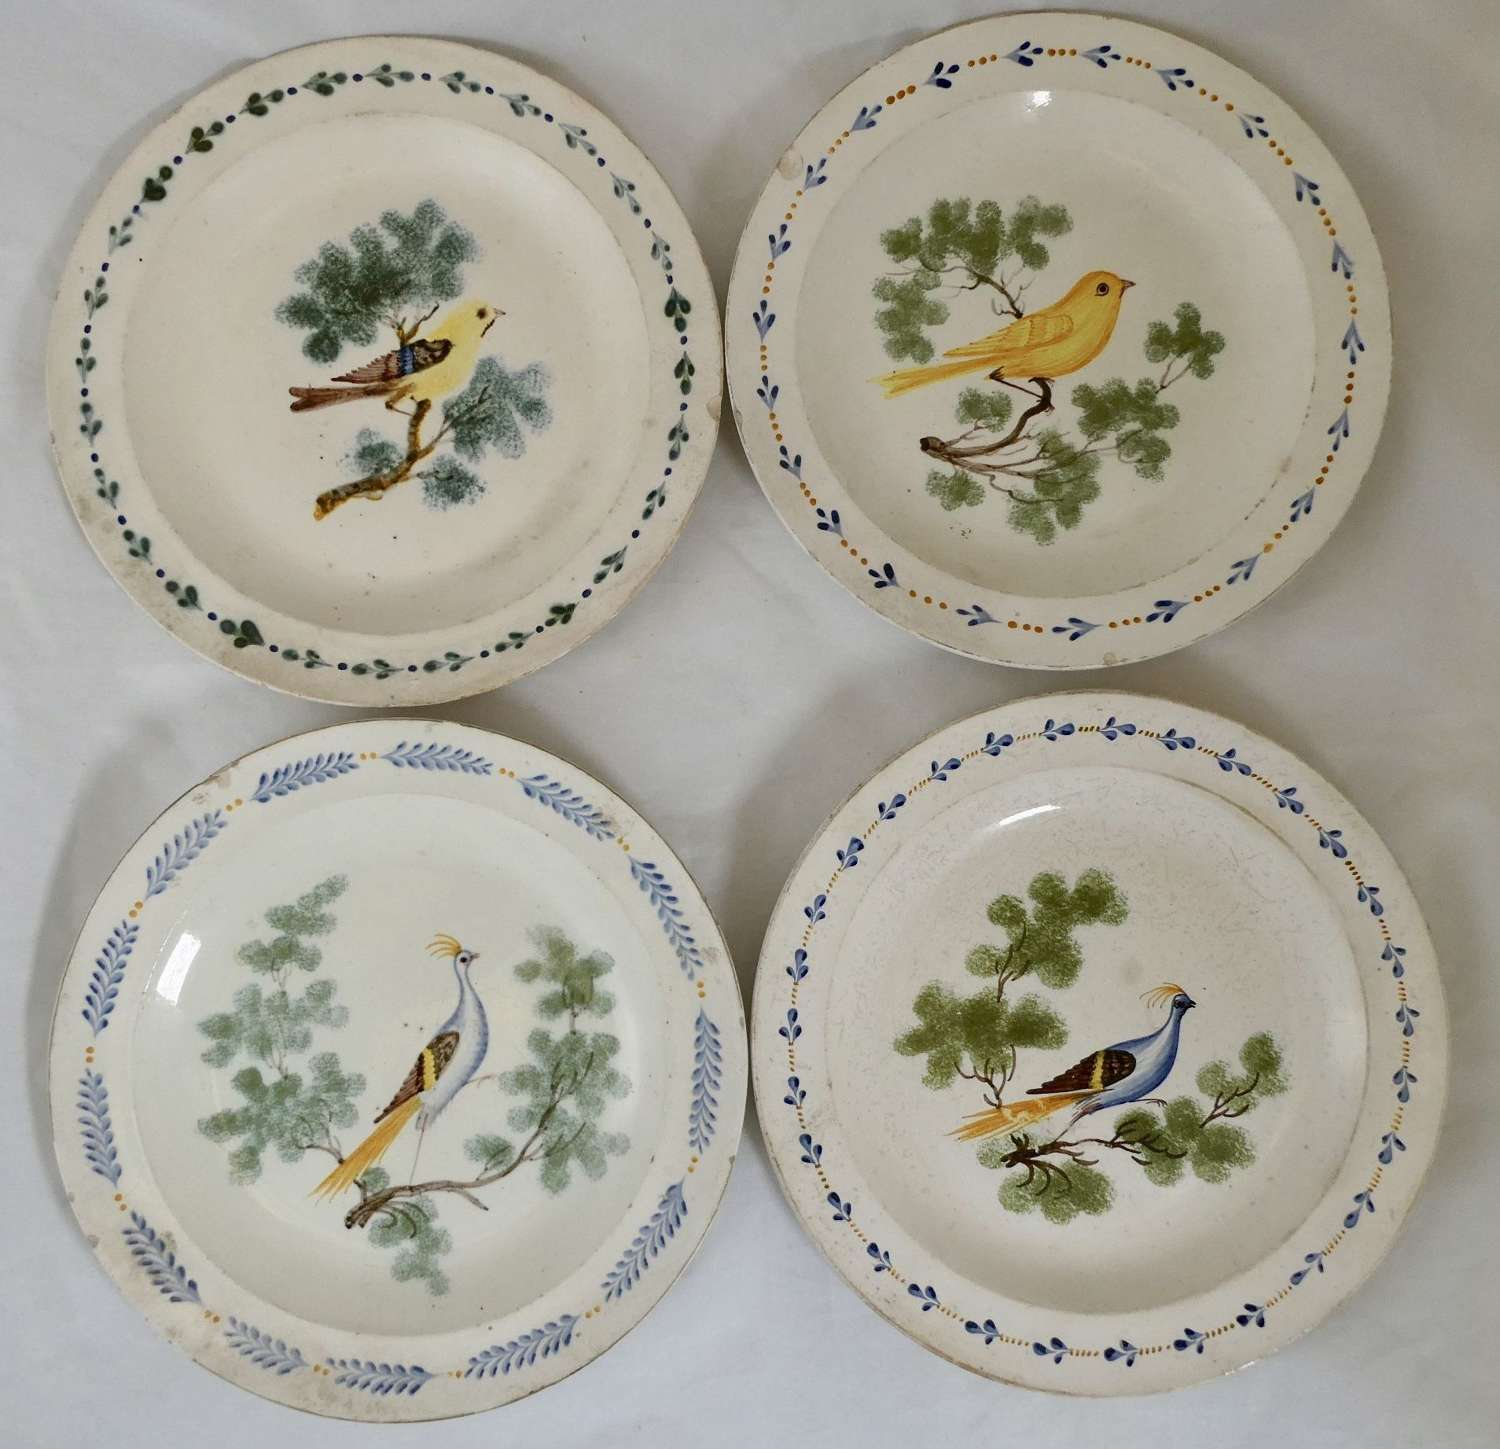 Set of Four Creamware Plates